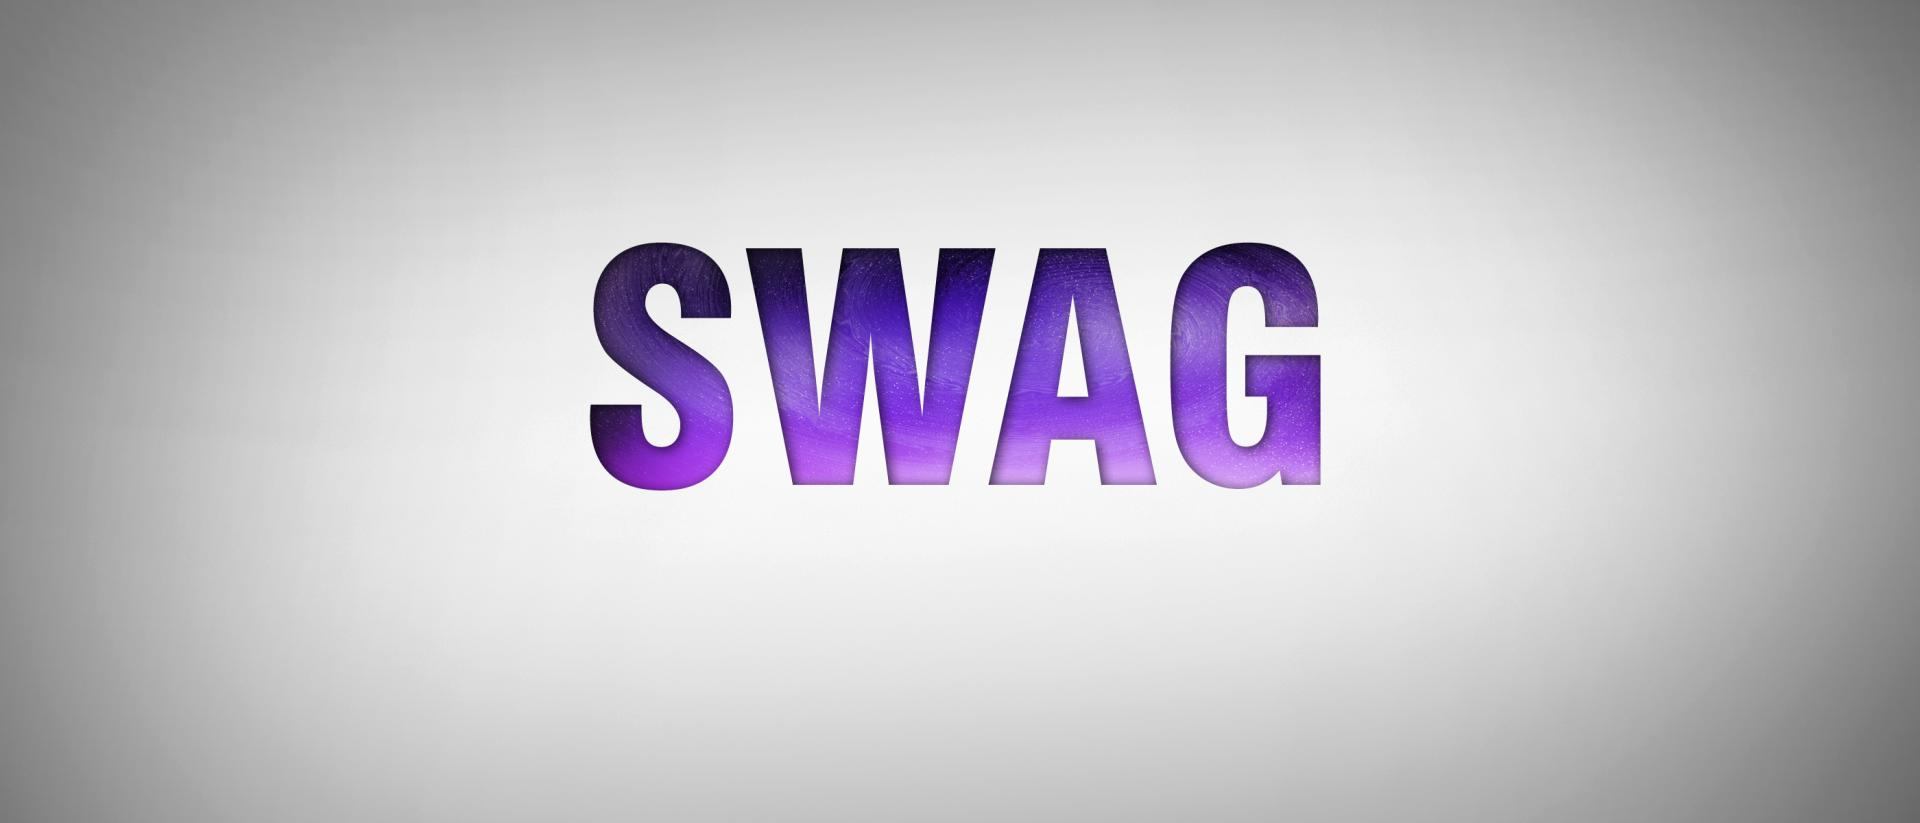 Swag Artistic wallpapers HD quality